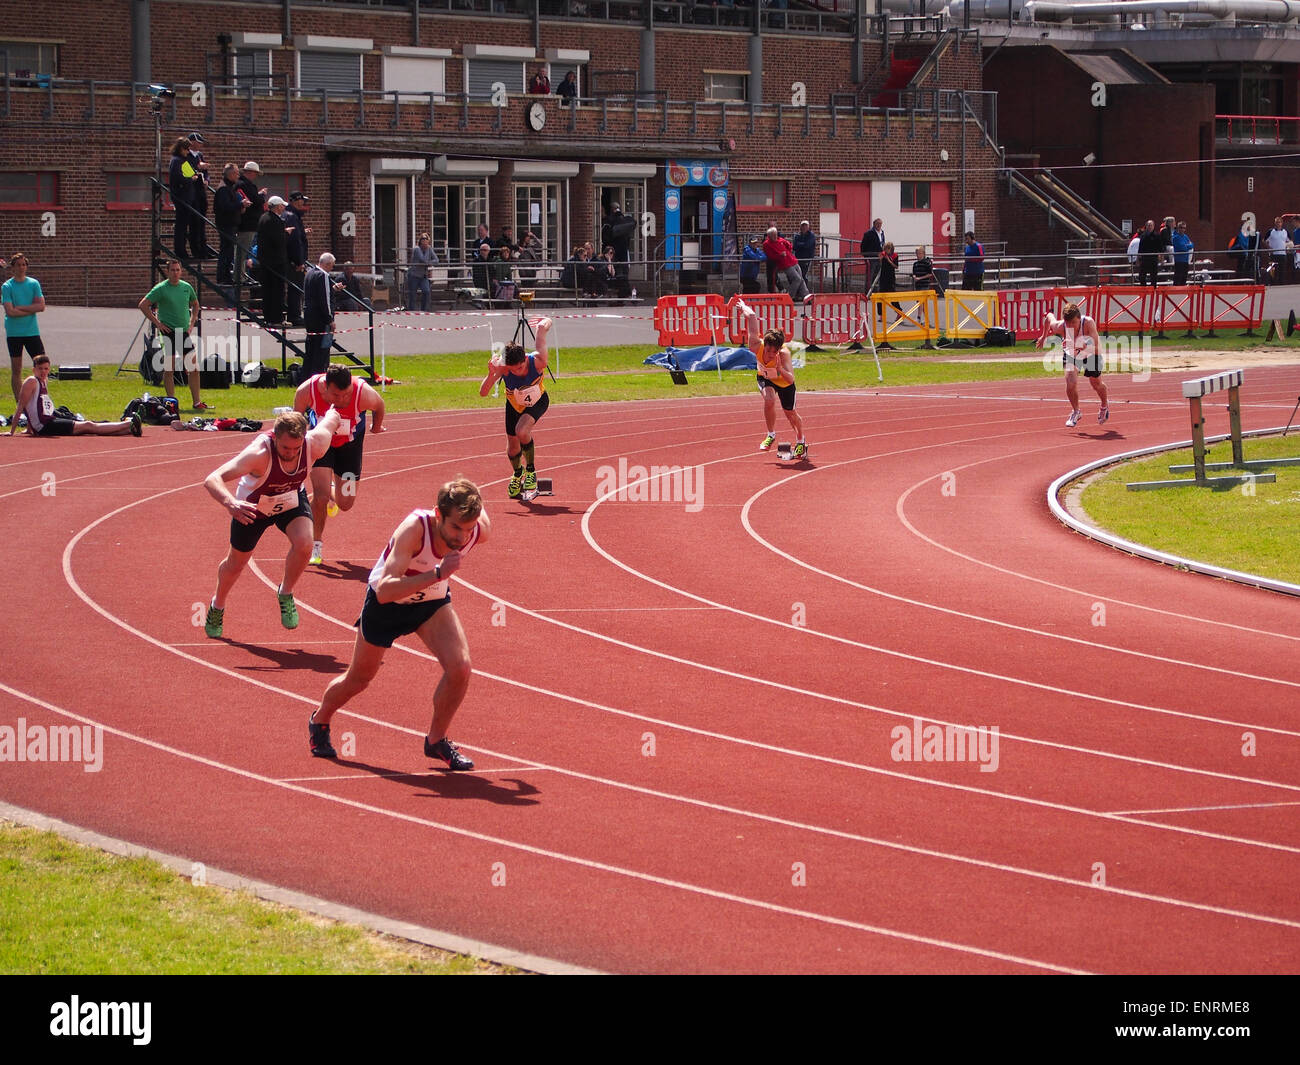 Runners set off on an 800M race at the Mountbatten Centre, Portsmouth, Hampshire, England - Stock Image